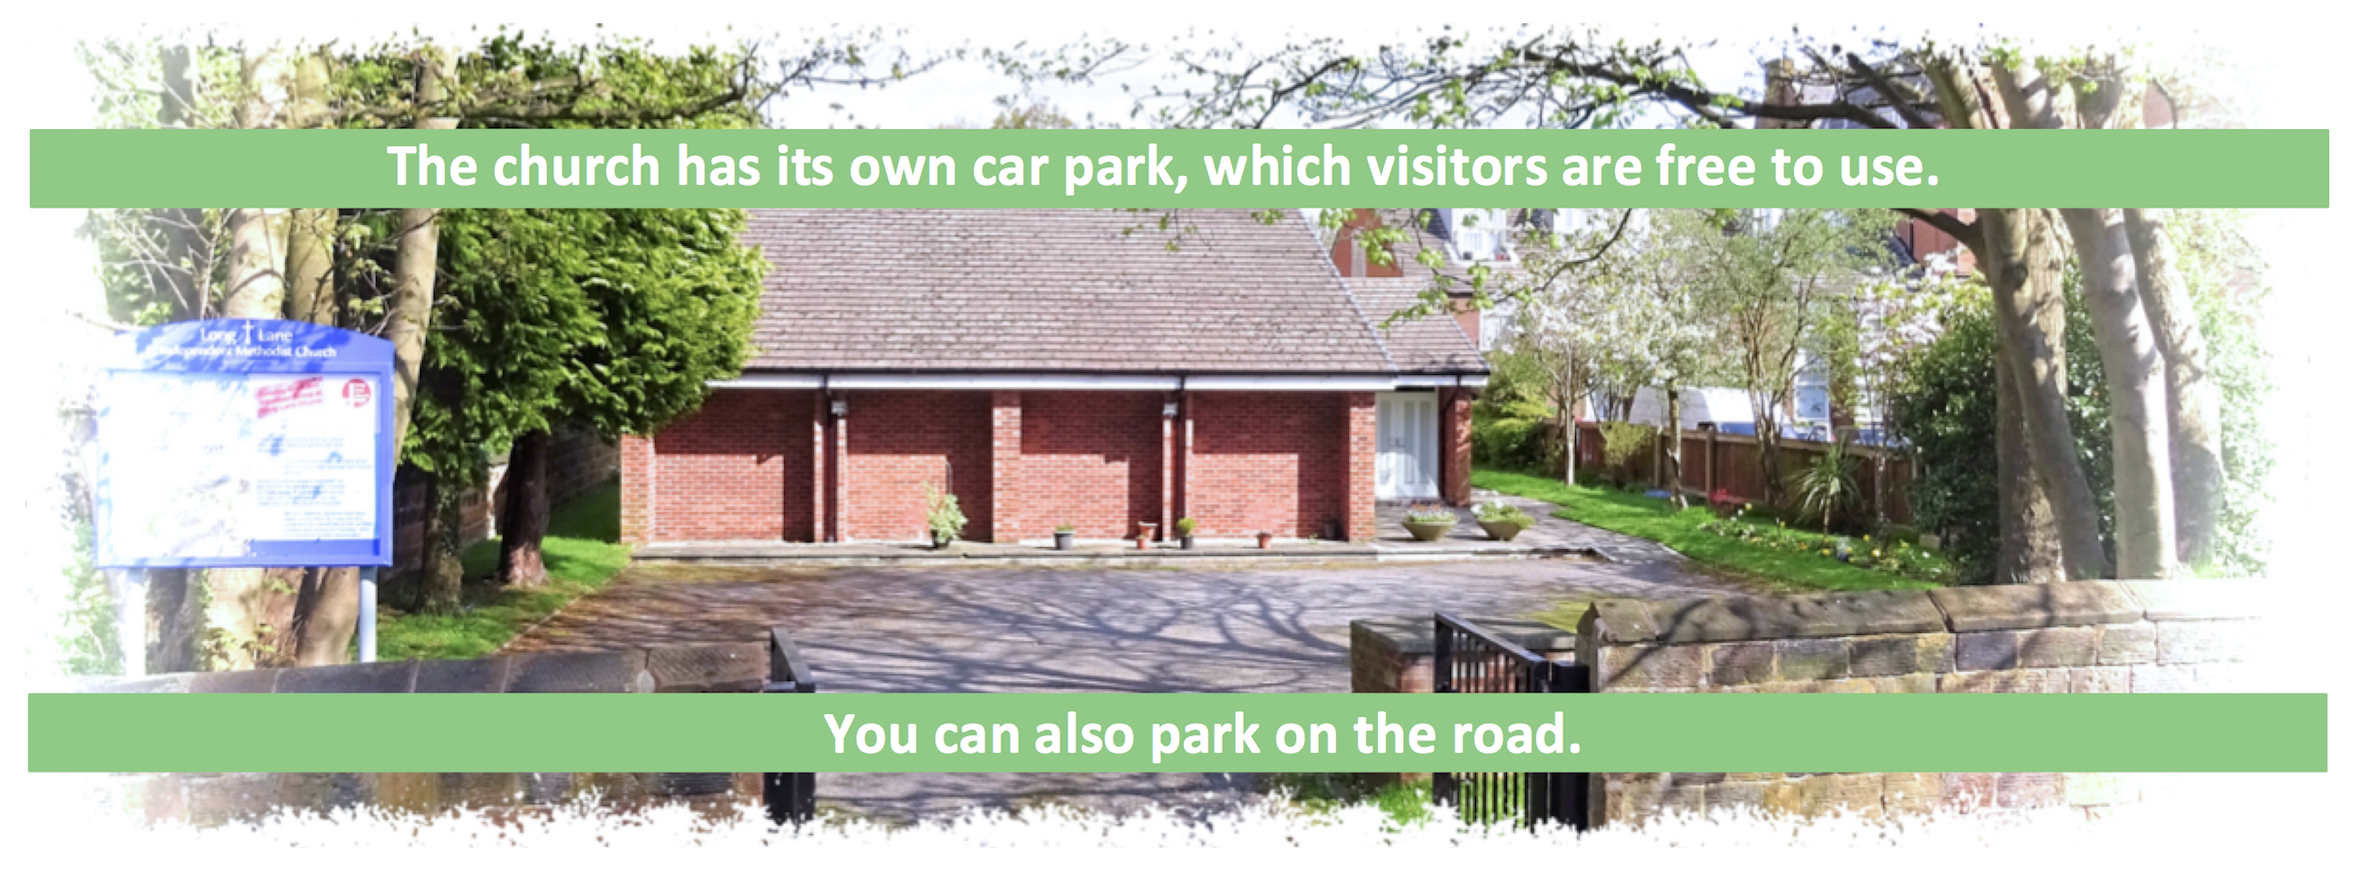 Long Lane Independent Methodist Church has its own car park, which visitors may freely use. You can also park on the road.